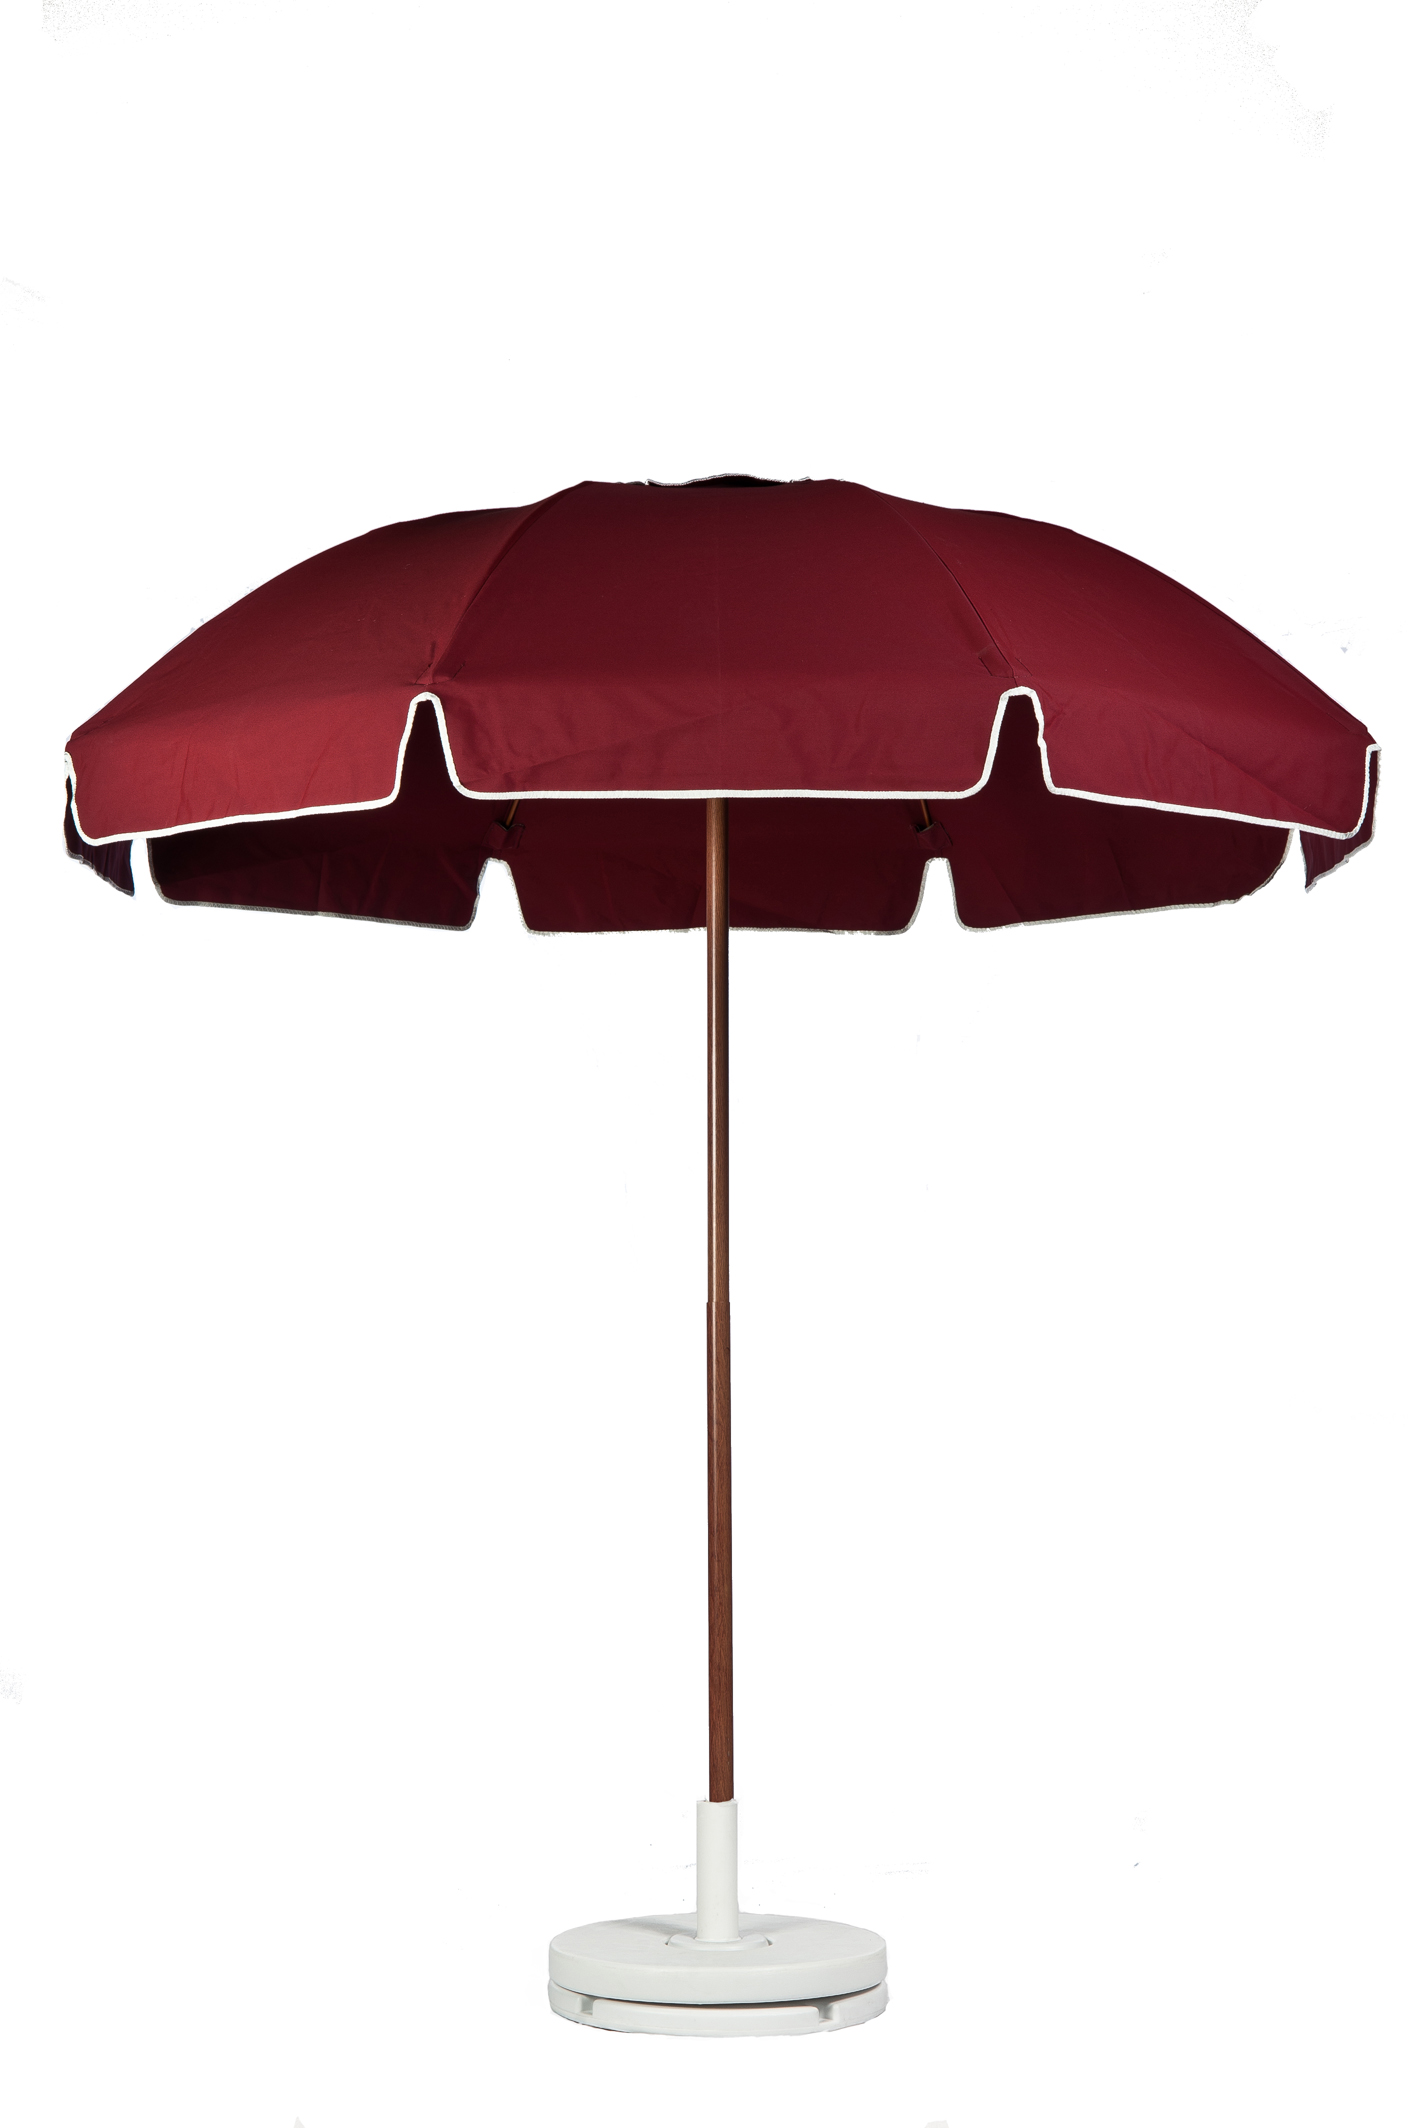 7.5′ PATIO UMBRELLA WITH FIBERGLASS SKELETON WITH VALANCE & VENT Stock Fabric:$219.00 Custom Fabric:$279.00 *Tilt Available For An Additional $10.00